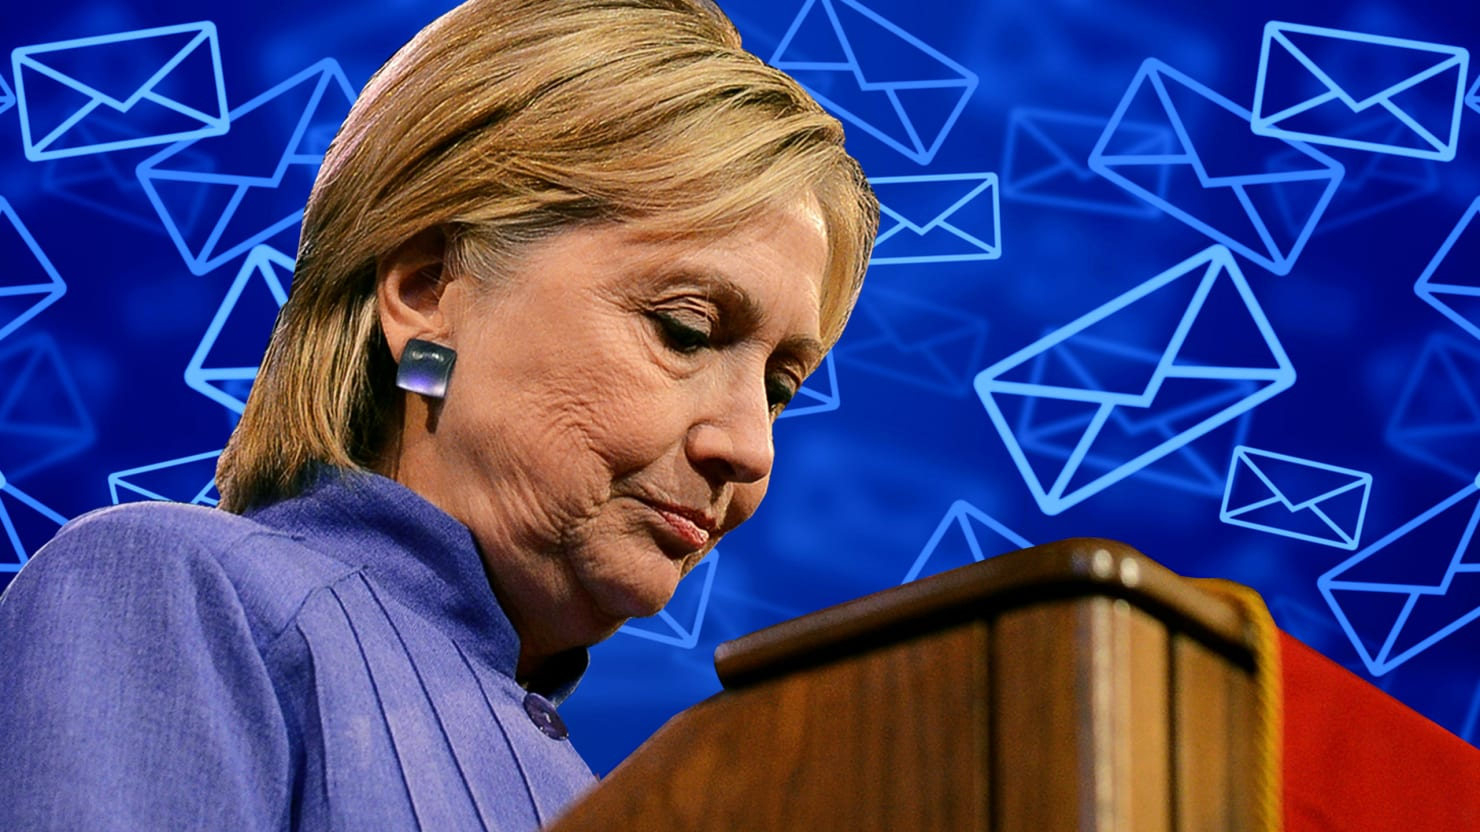 Hillary Clinton's Team Lost a Laptop Full of Her Emails in the Actual Mail